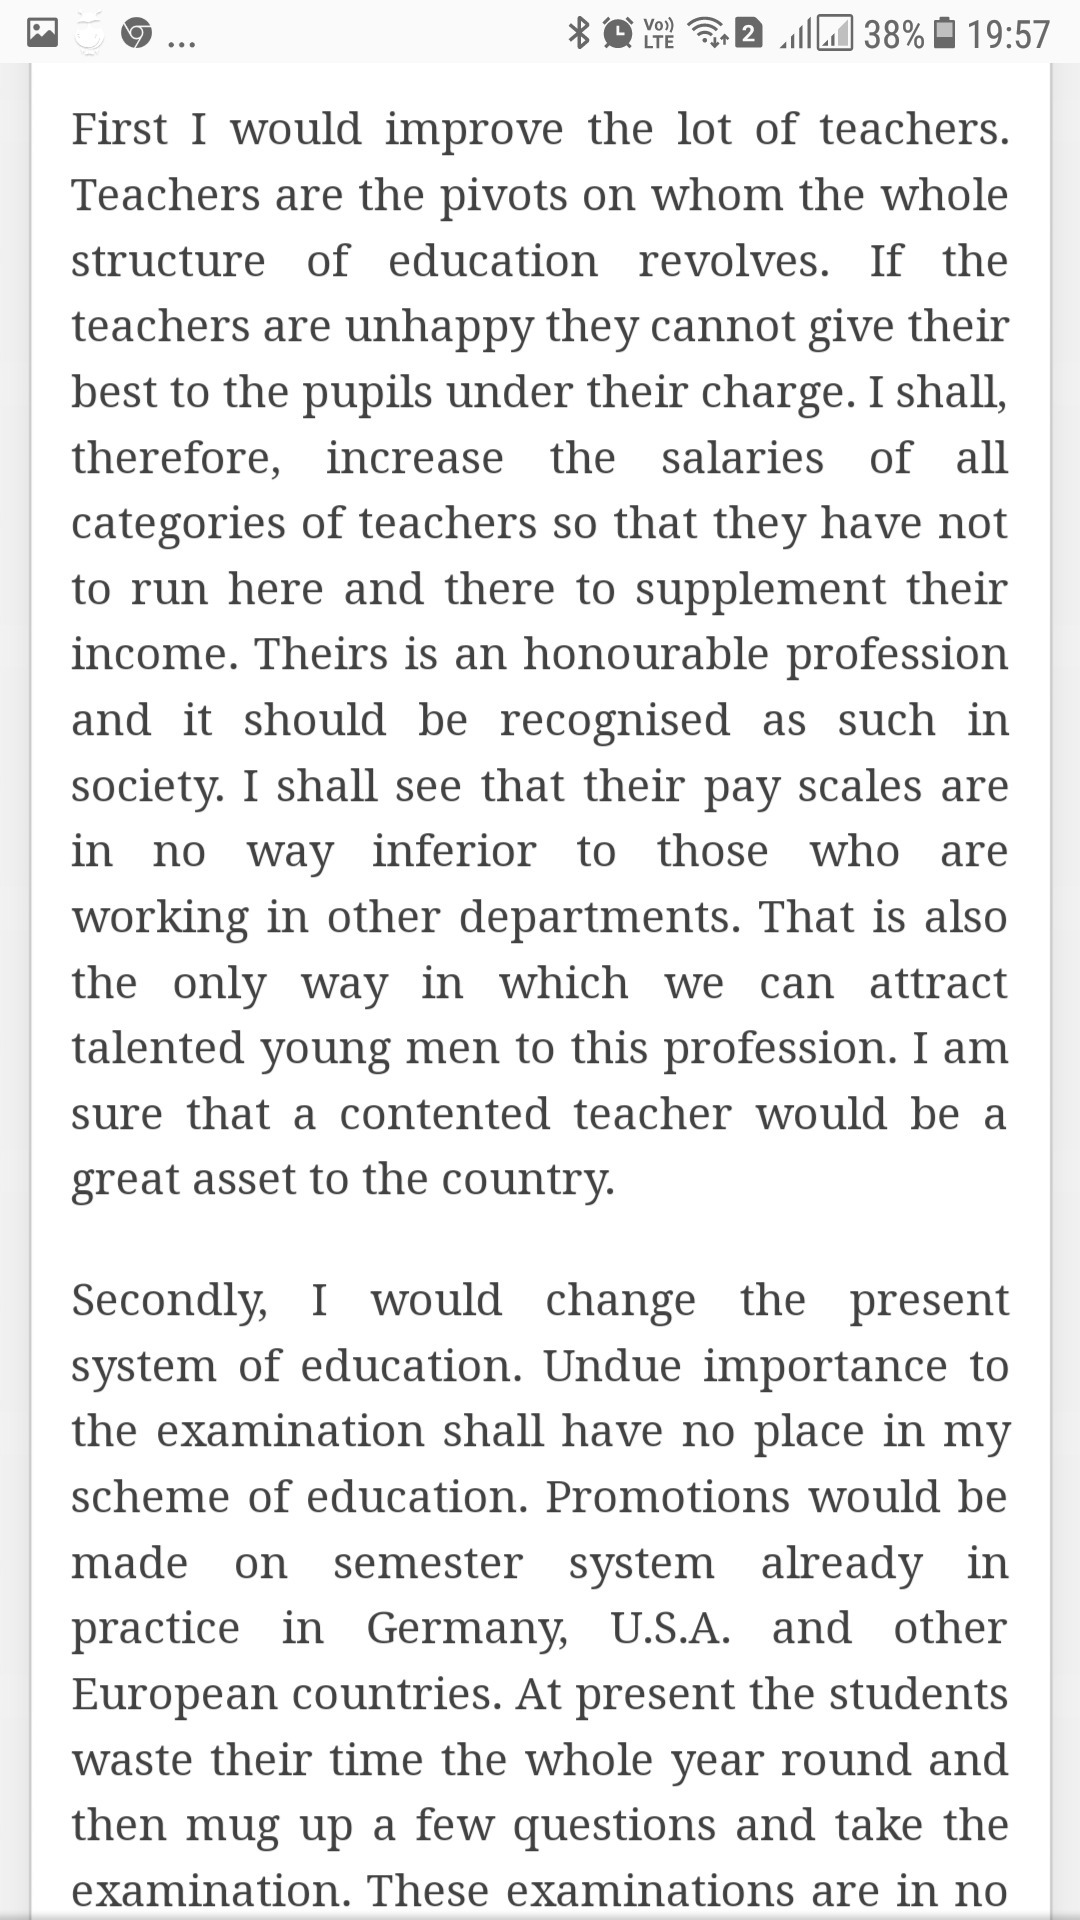 if i were the education minister